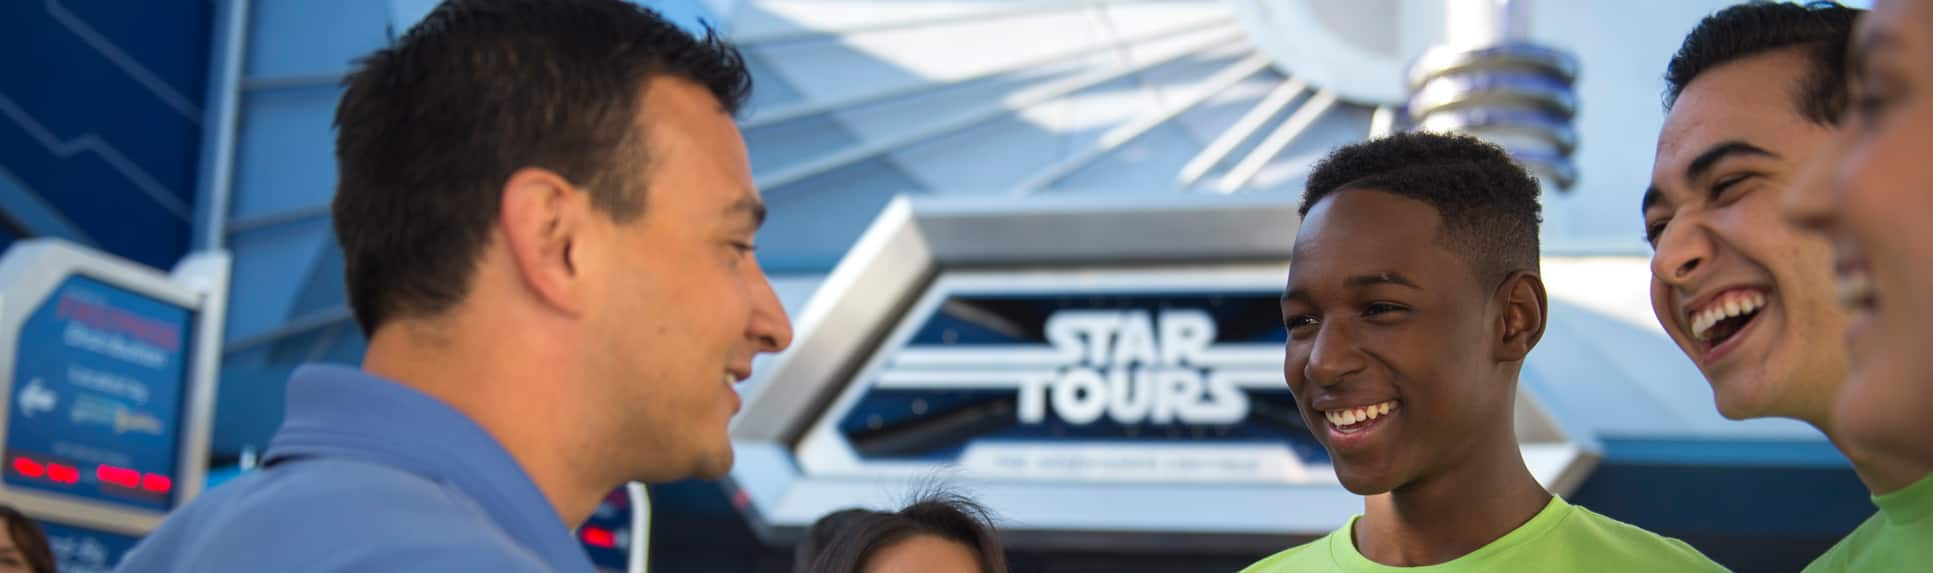 Two boys share a laugh with an adult by the Star Tours attraction